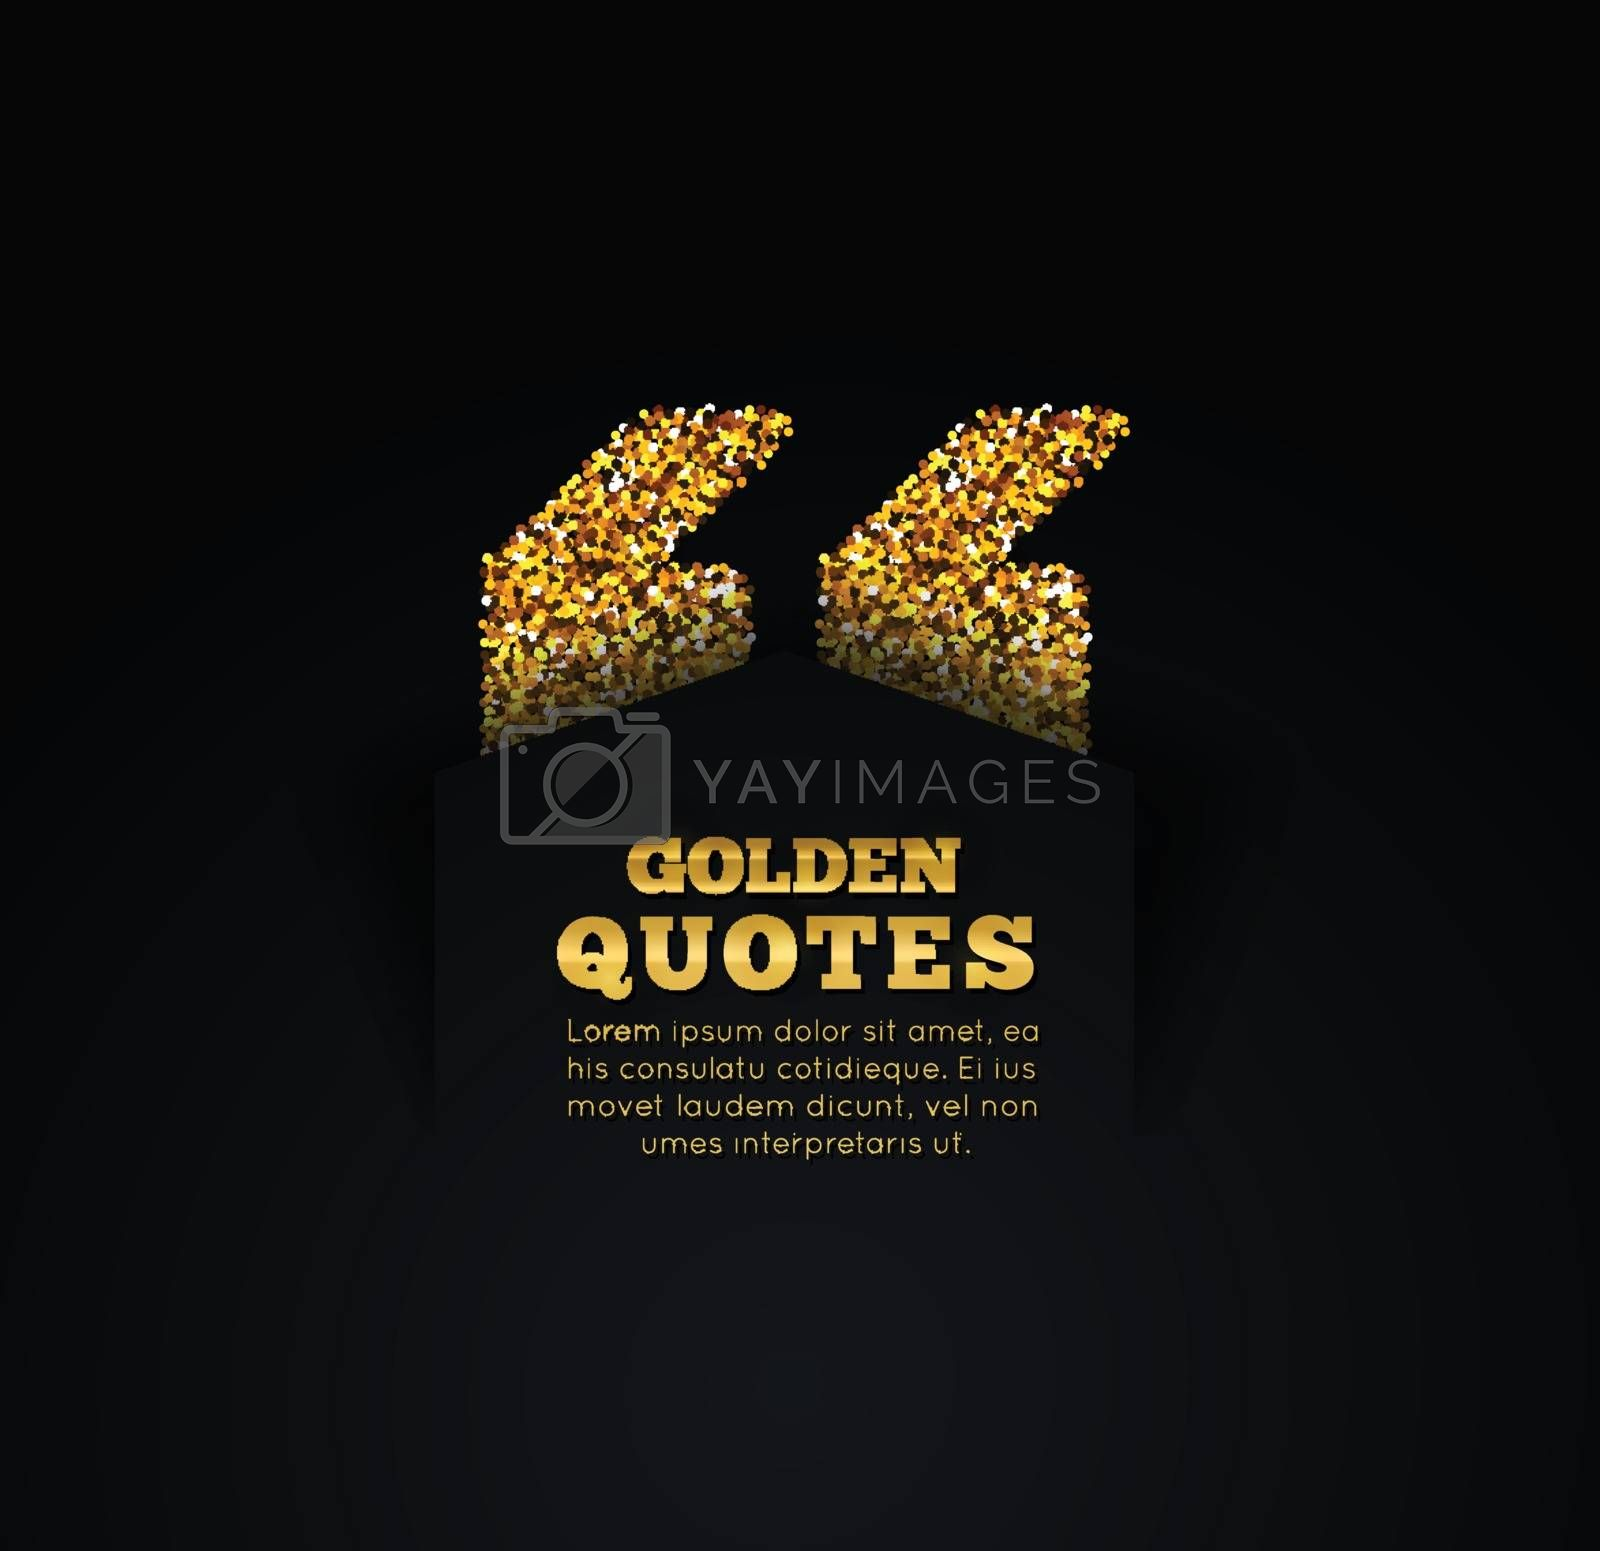 Golden quote blank template on dark background. by sermax55